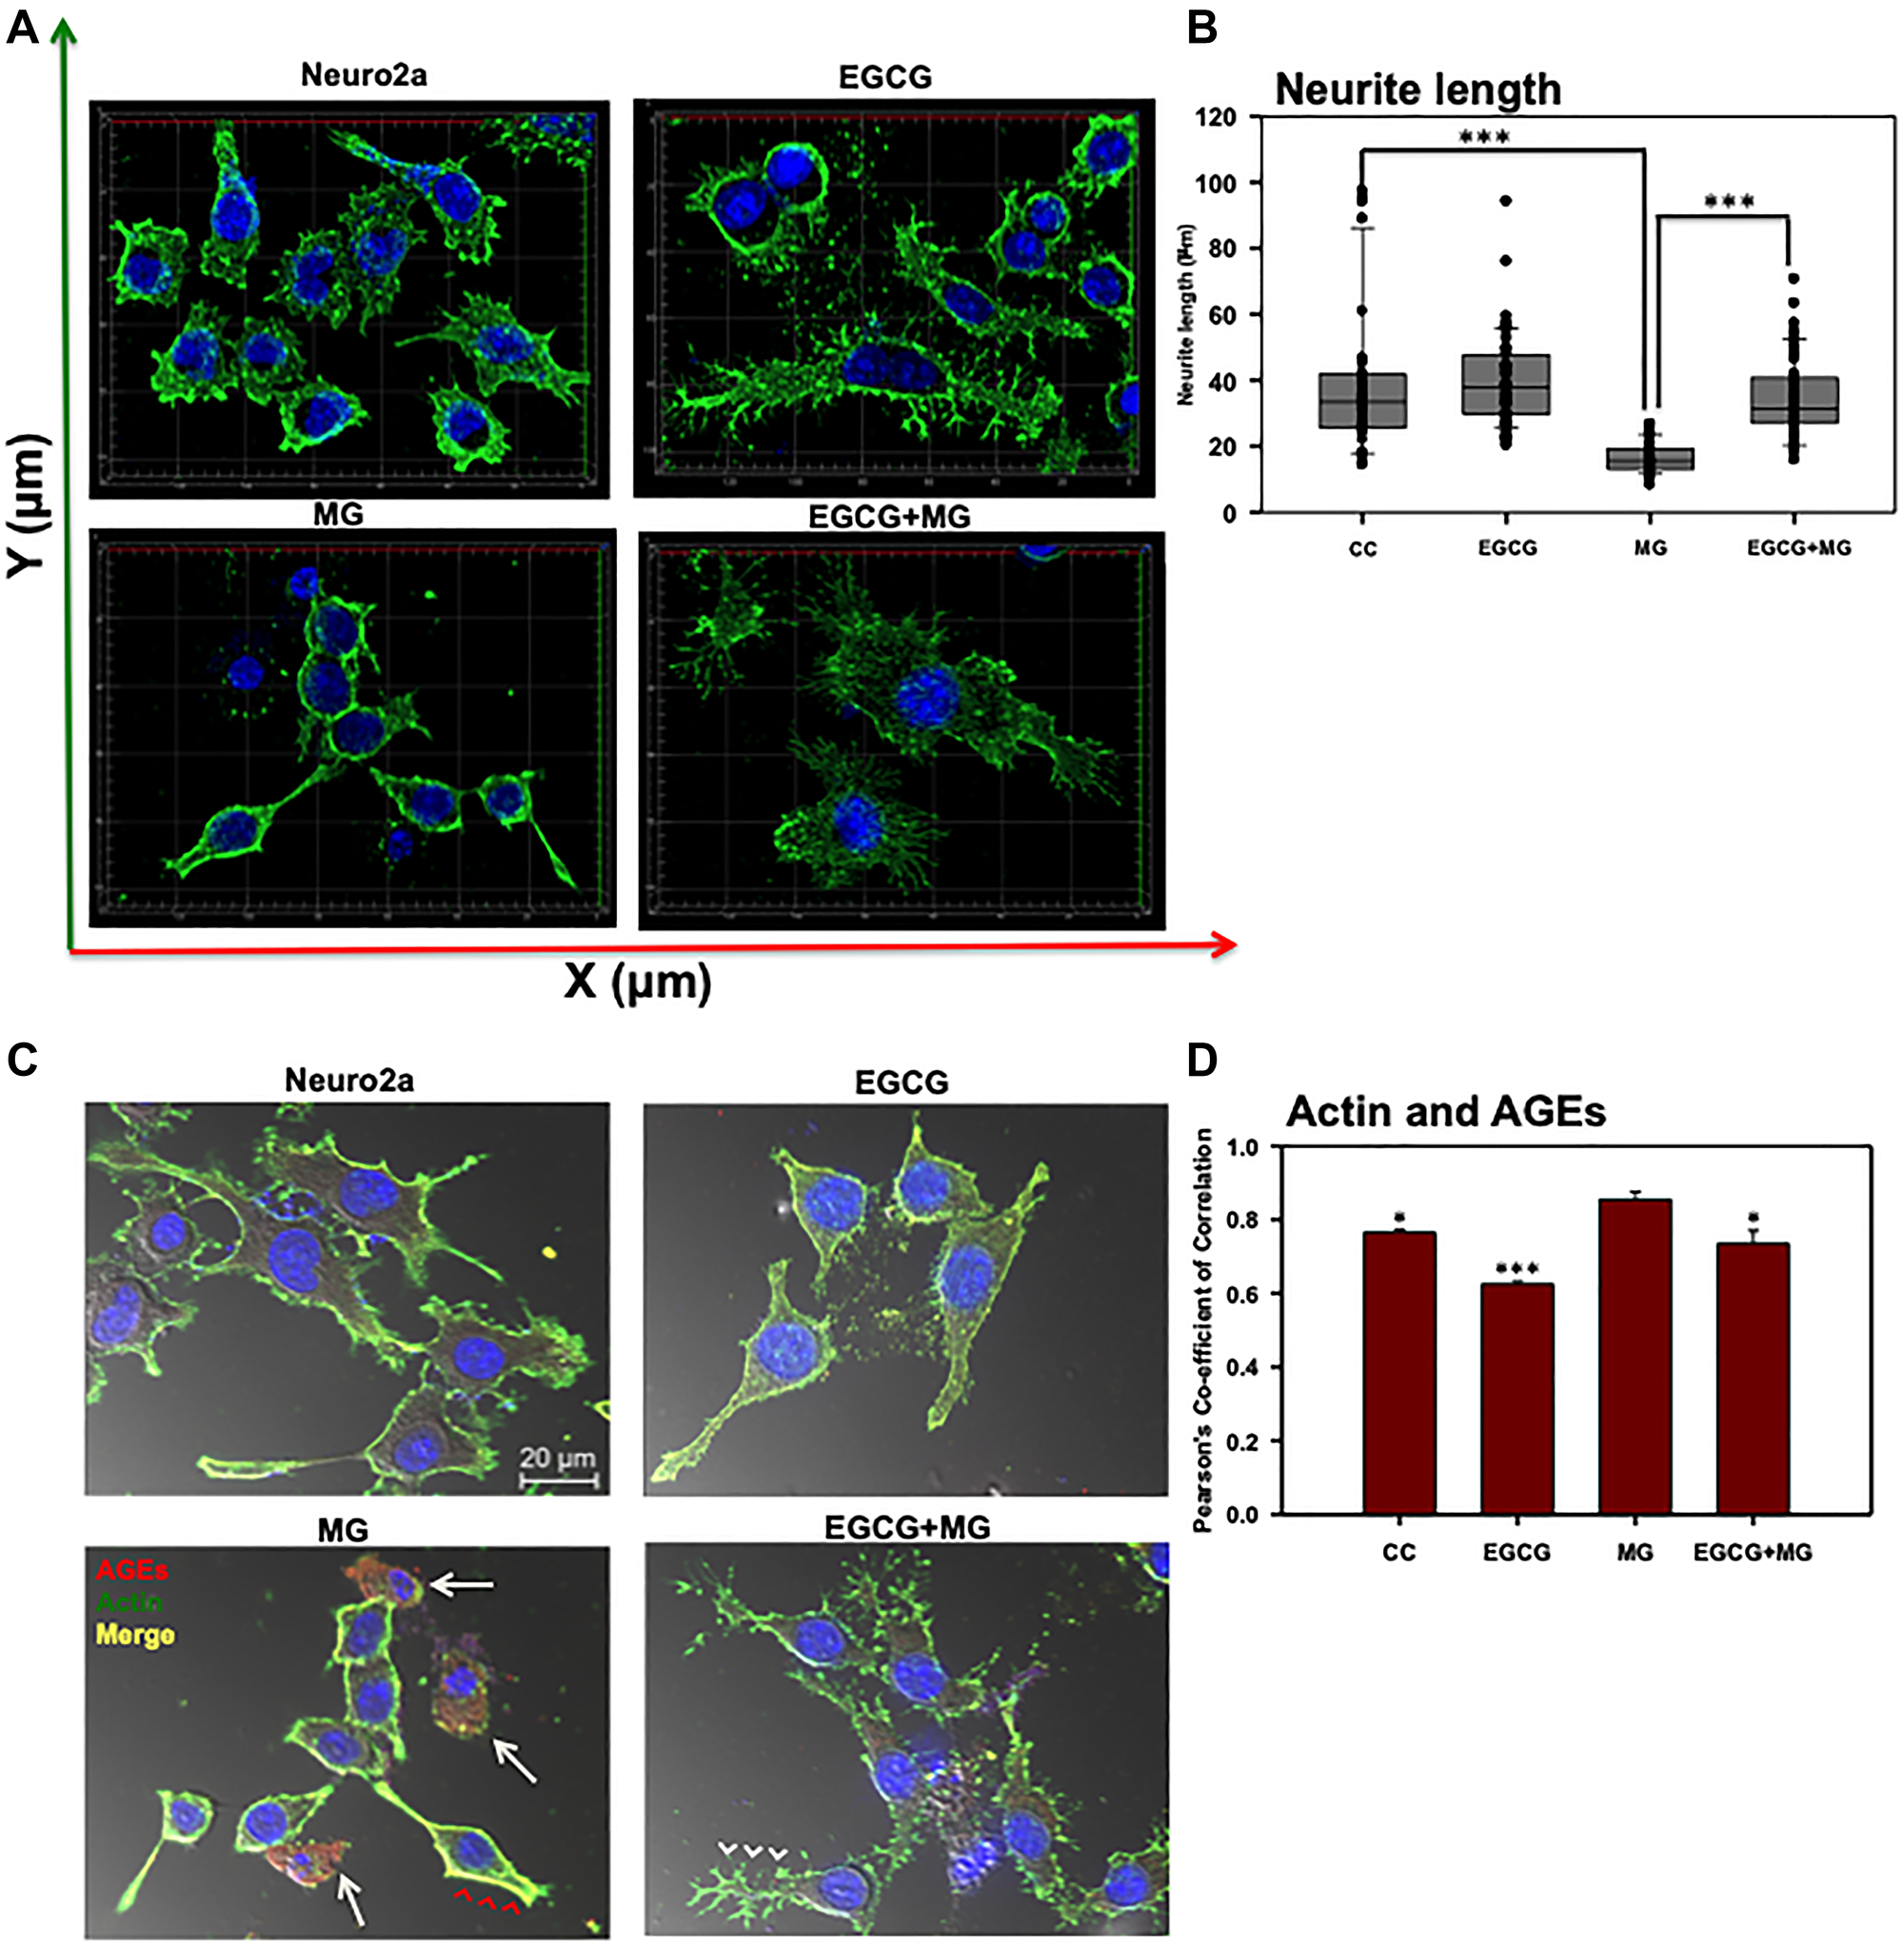 Effect of EGCG on actin cytoskeleton remodeling.